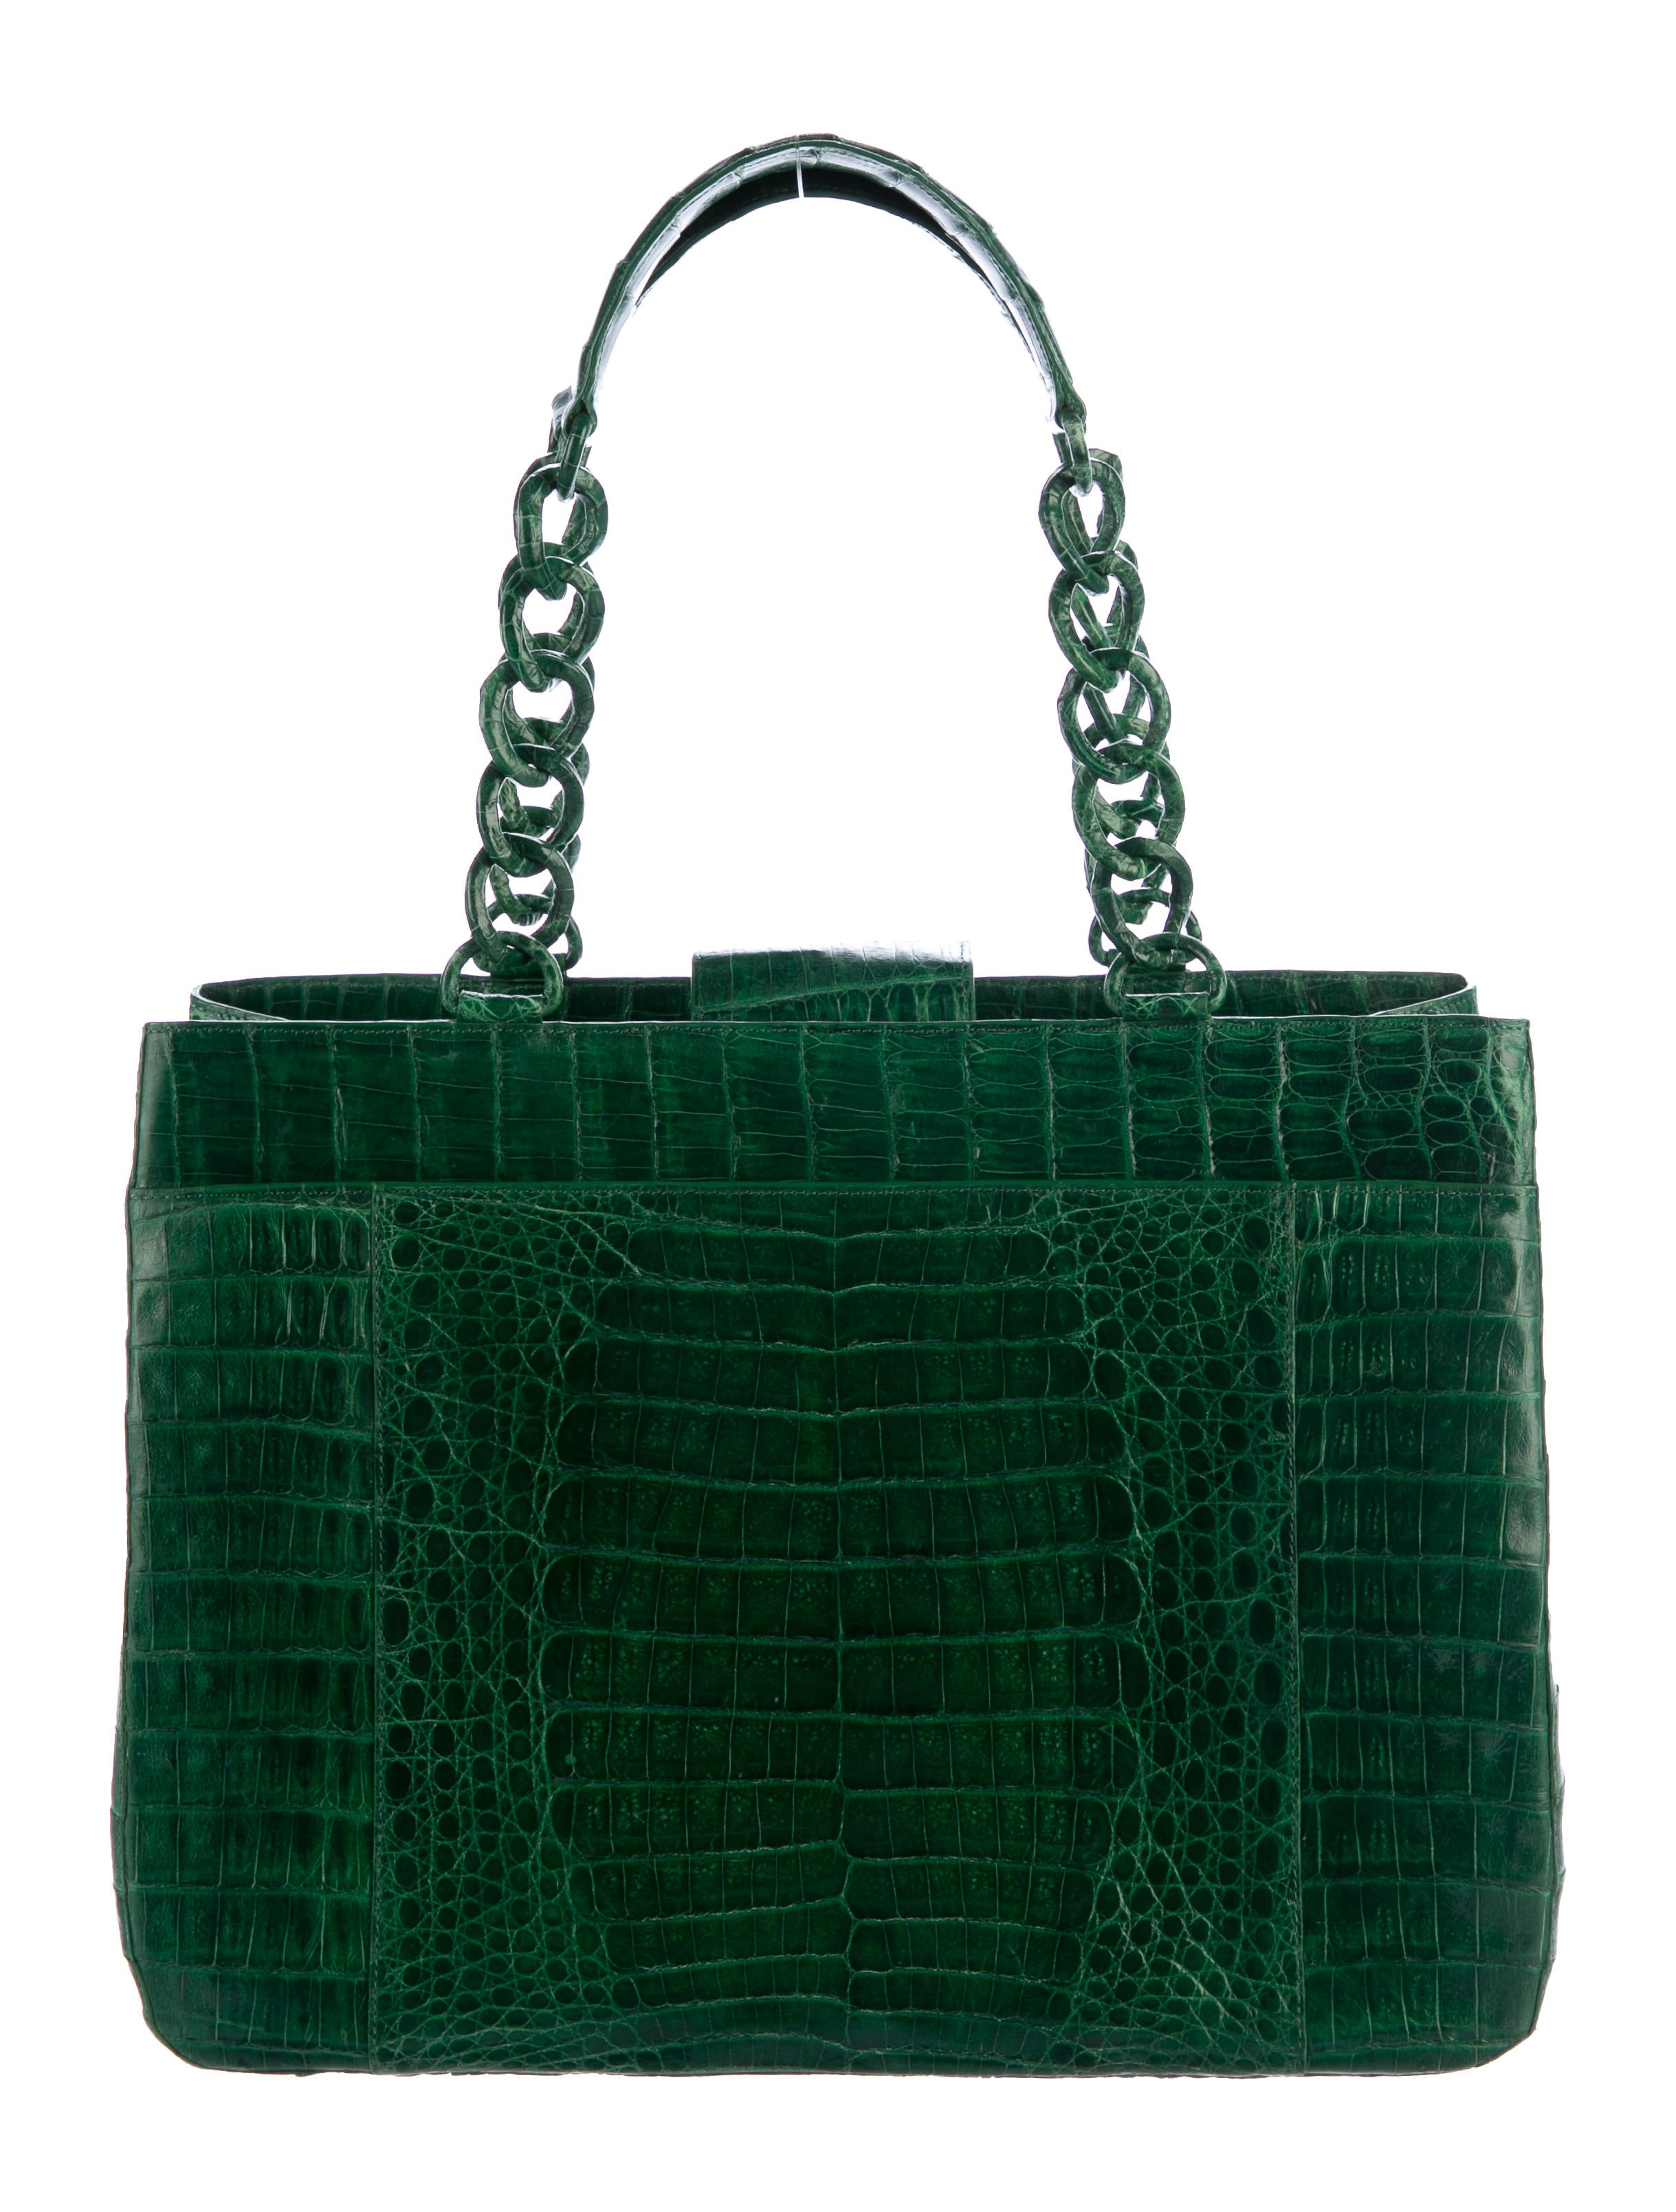 Nancy gonzalez crocodile chain tote handbags nan24092 for Nancy gonzalez crocodile tote